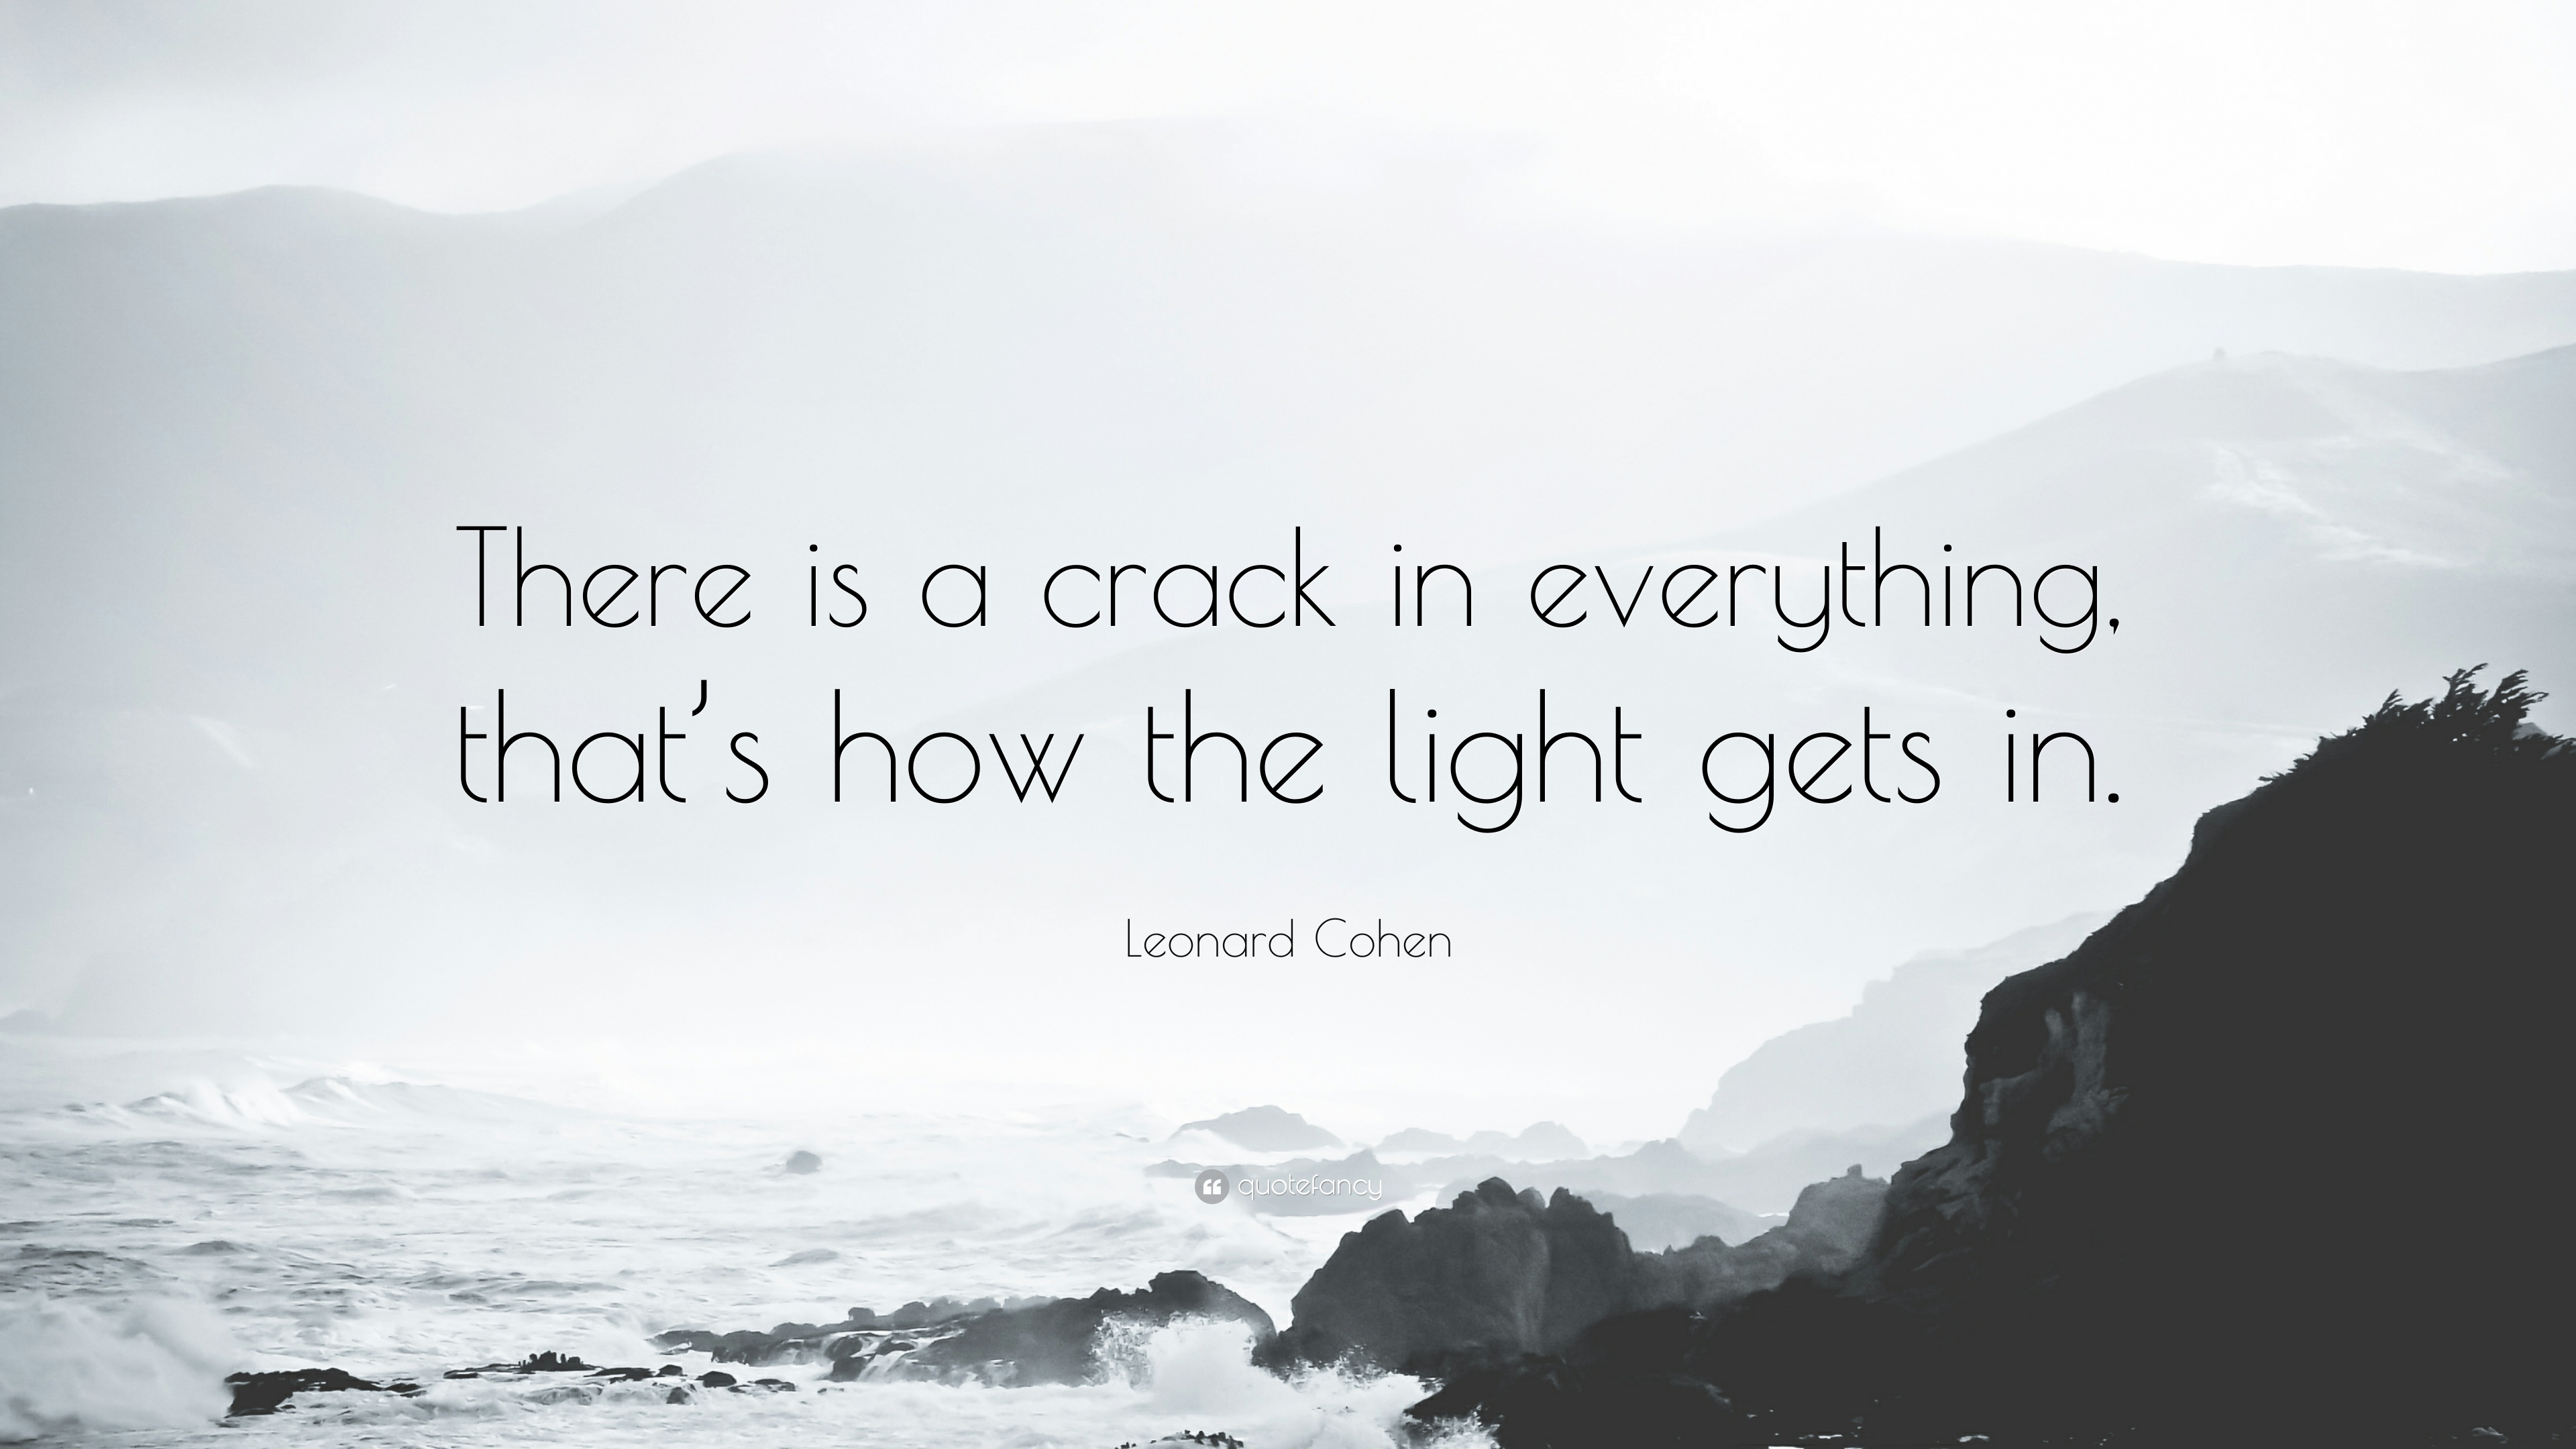 Leonard Cohen Quote: There is a crack in everything, that